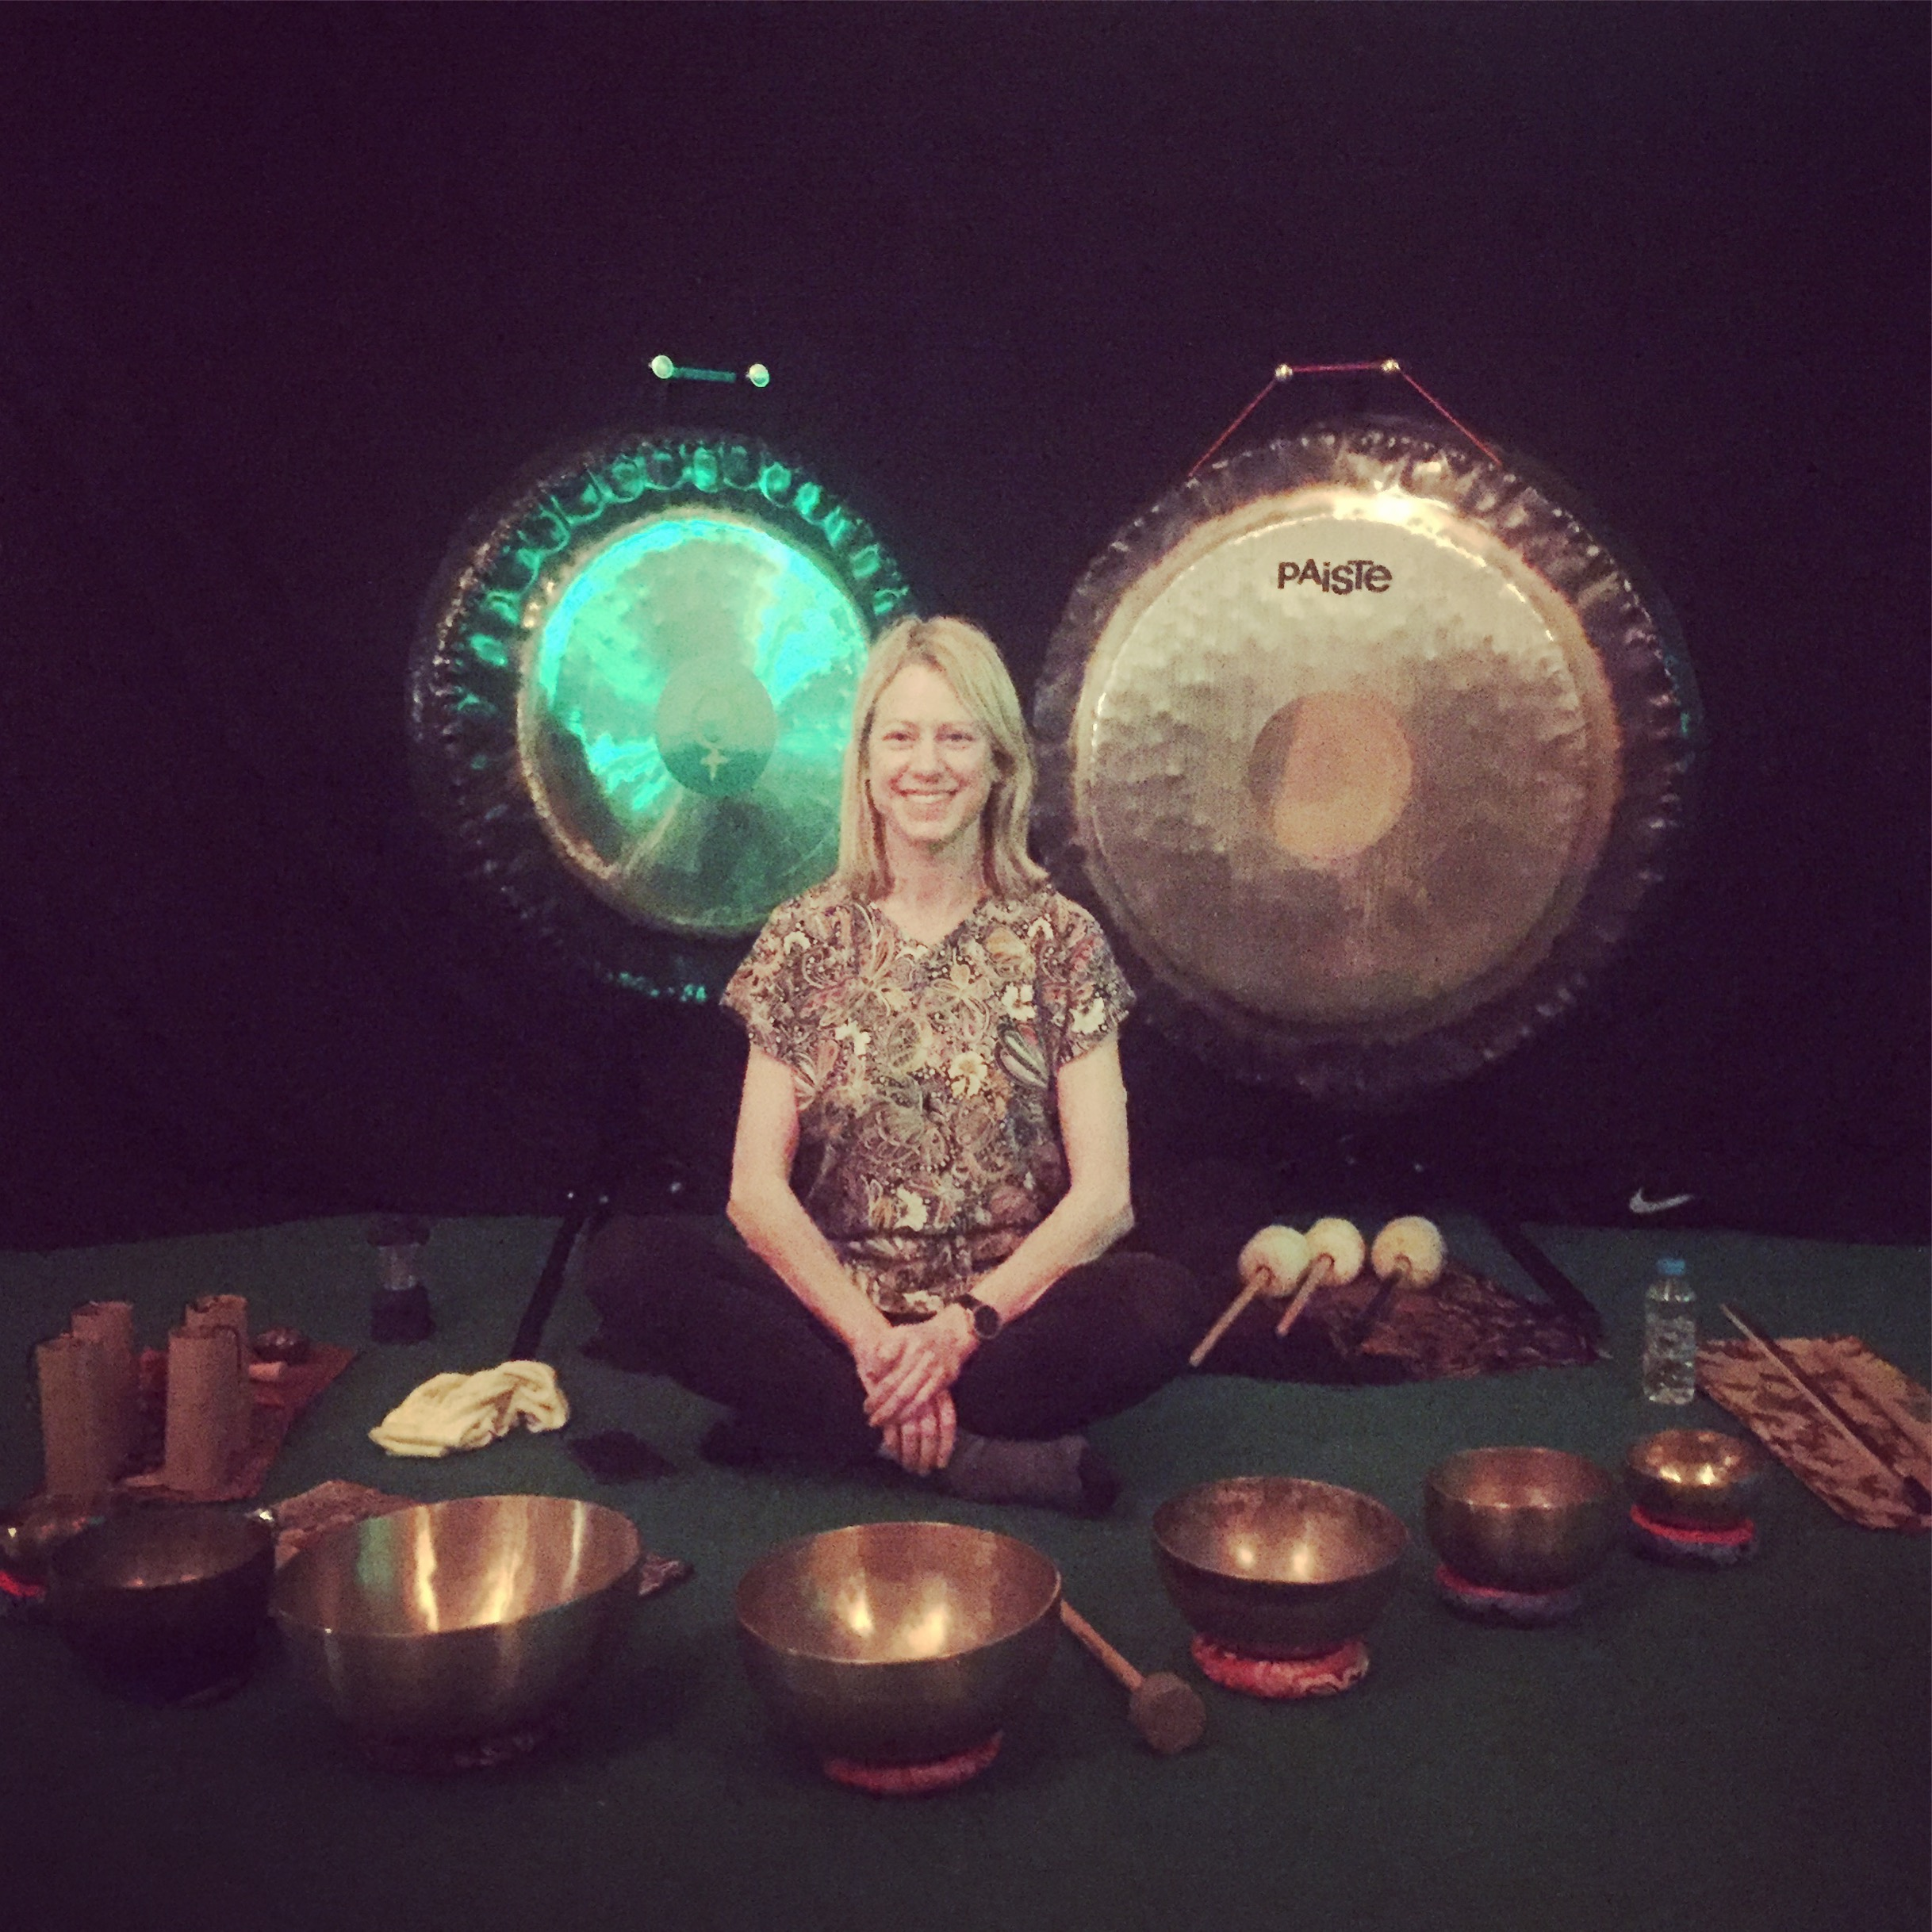 Gong bath at the Dragon Cafe